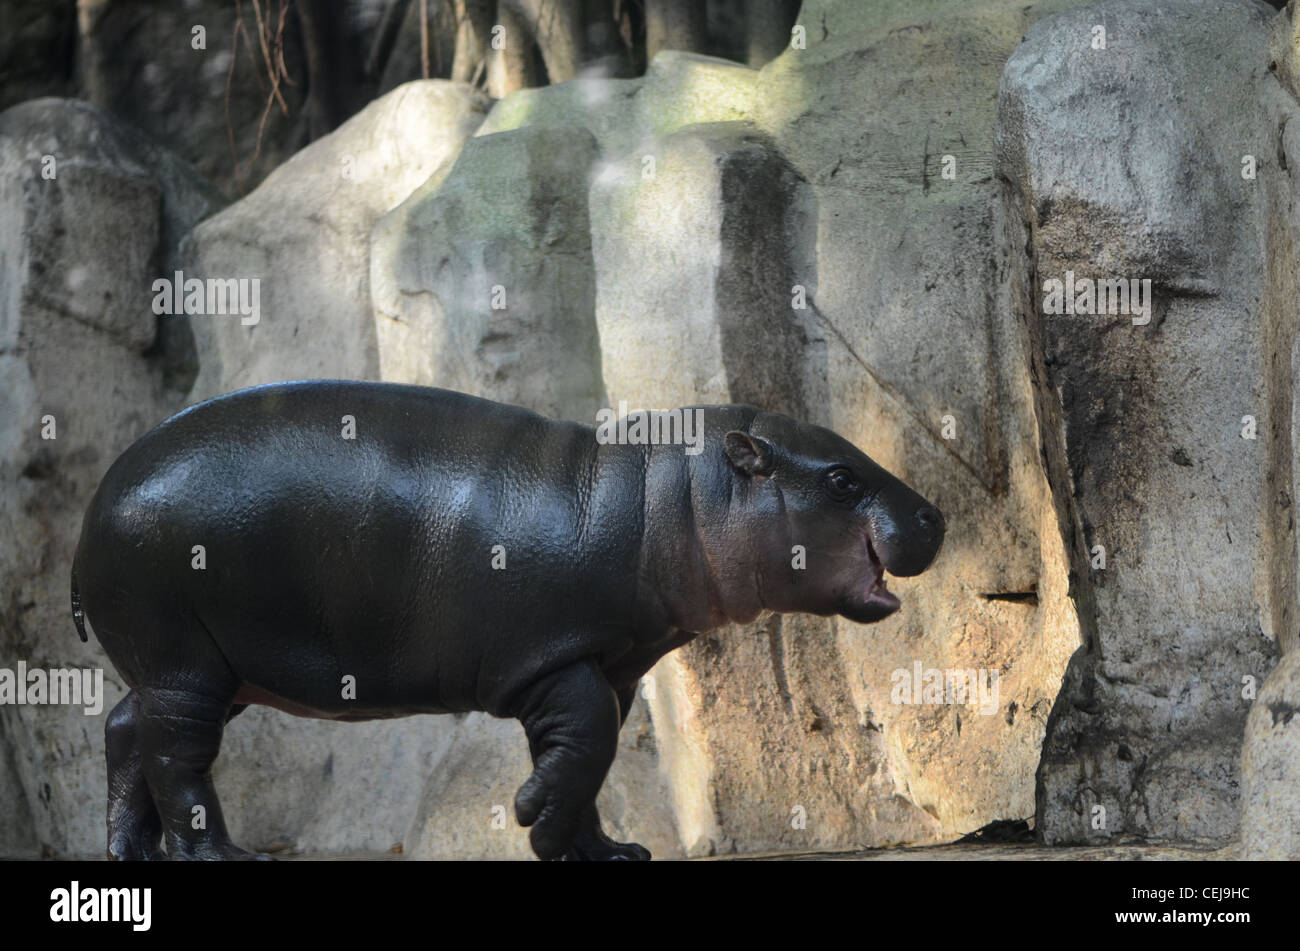 the pygmy hippo cub is angry and snarling. - Stock Image